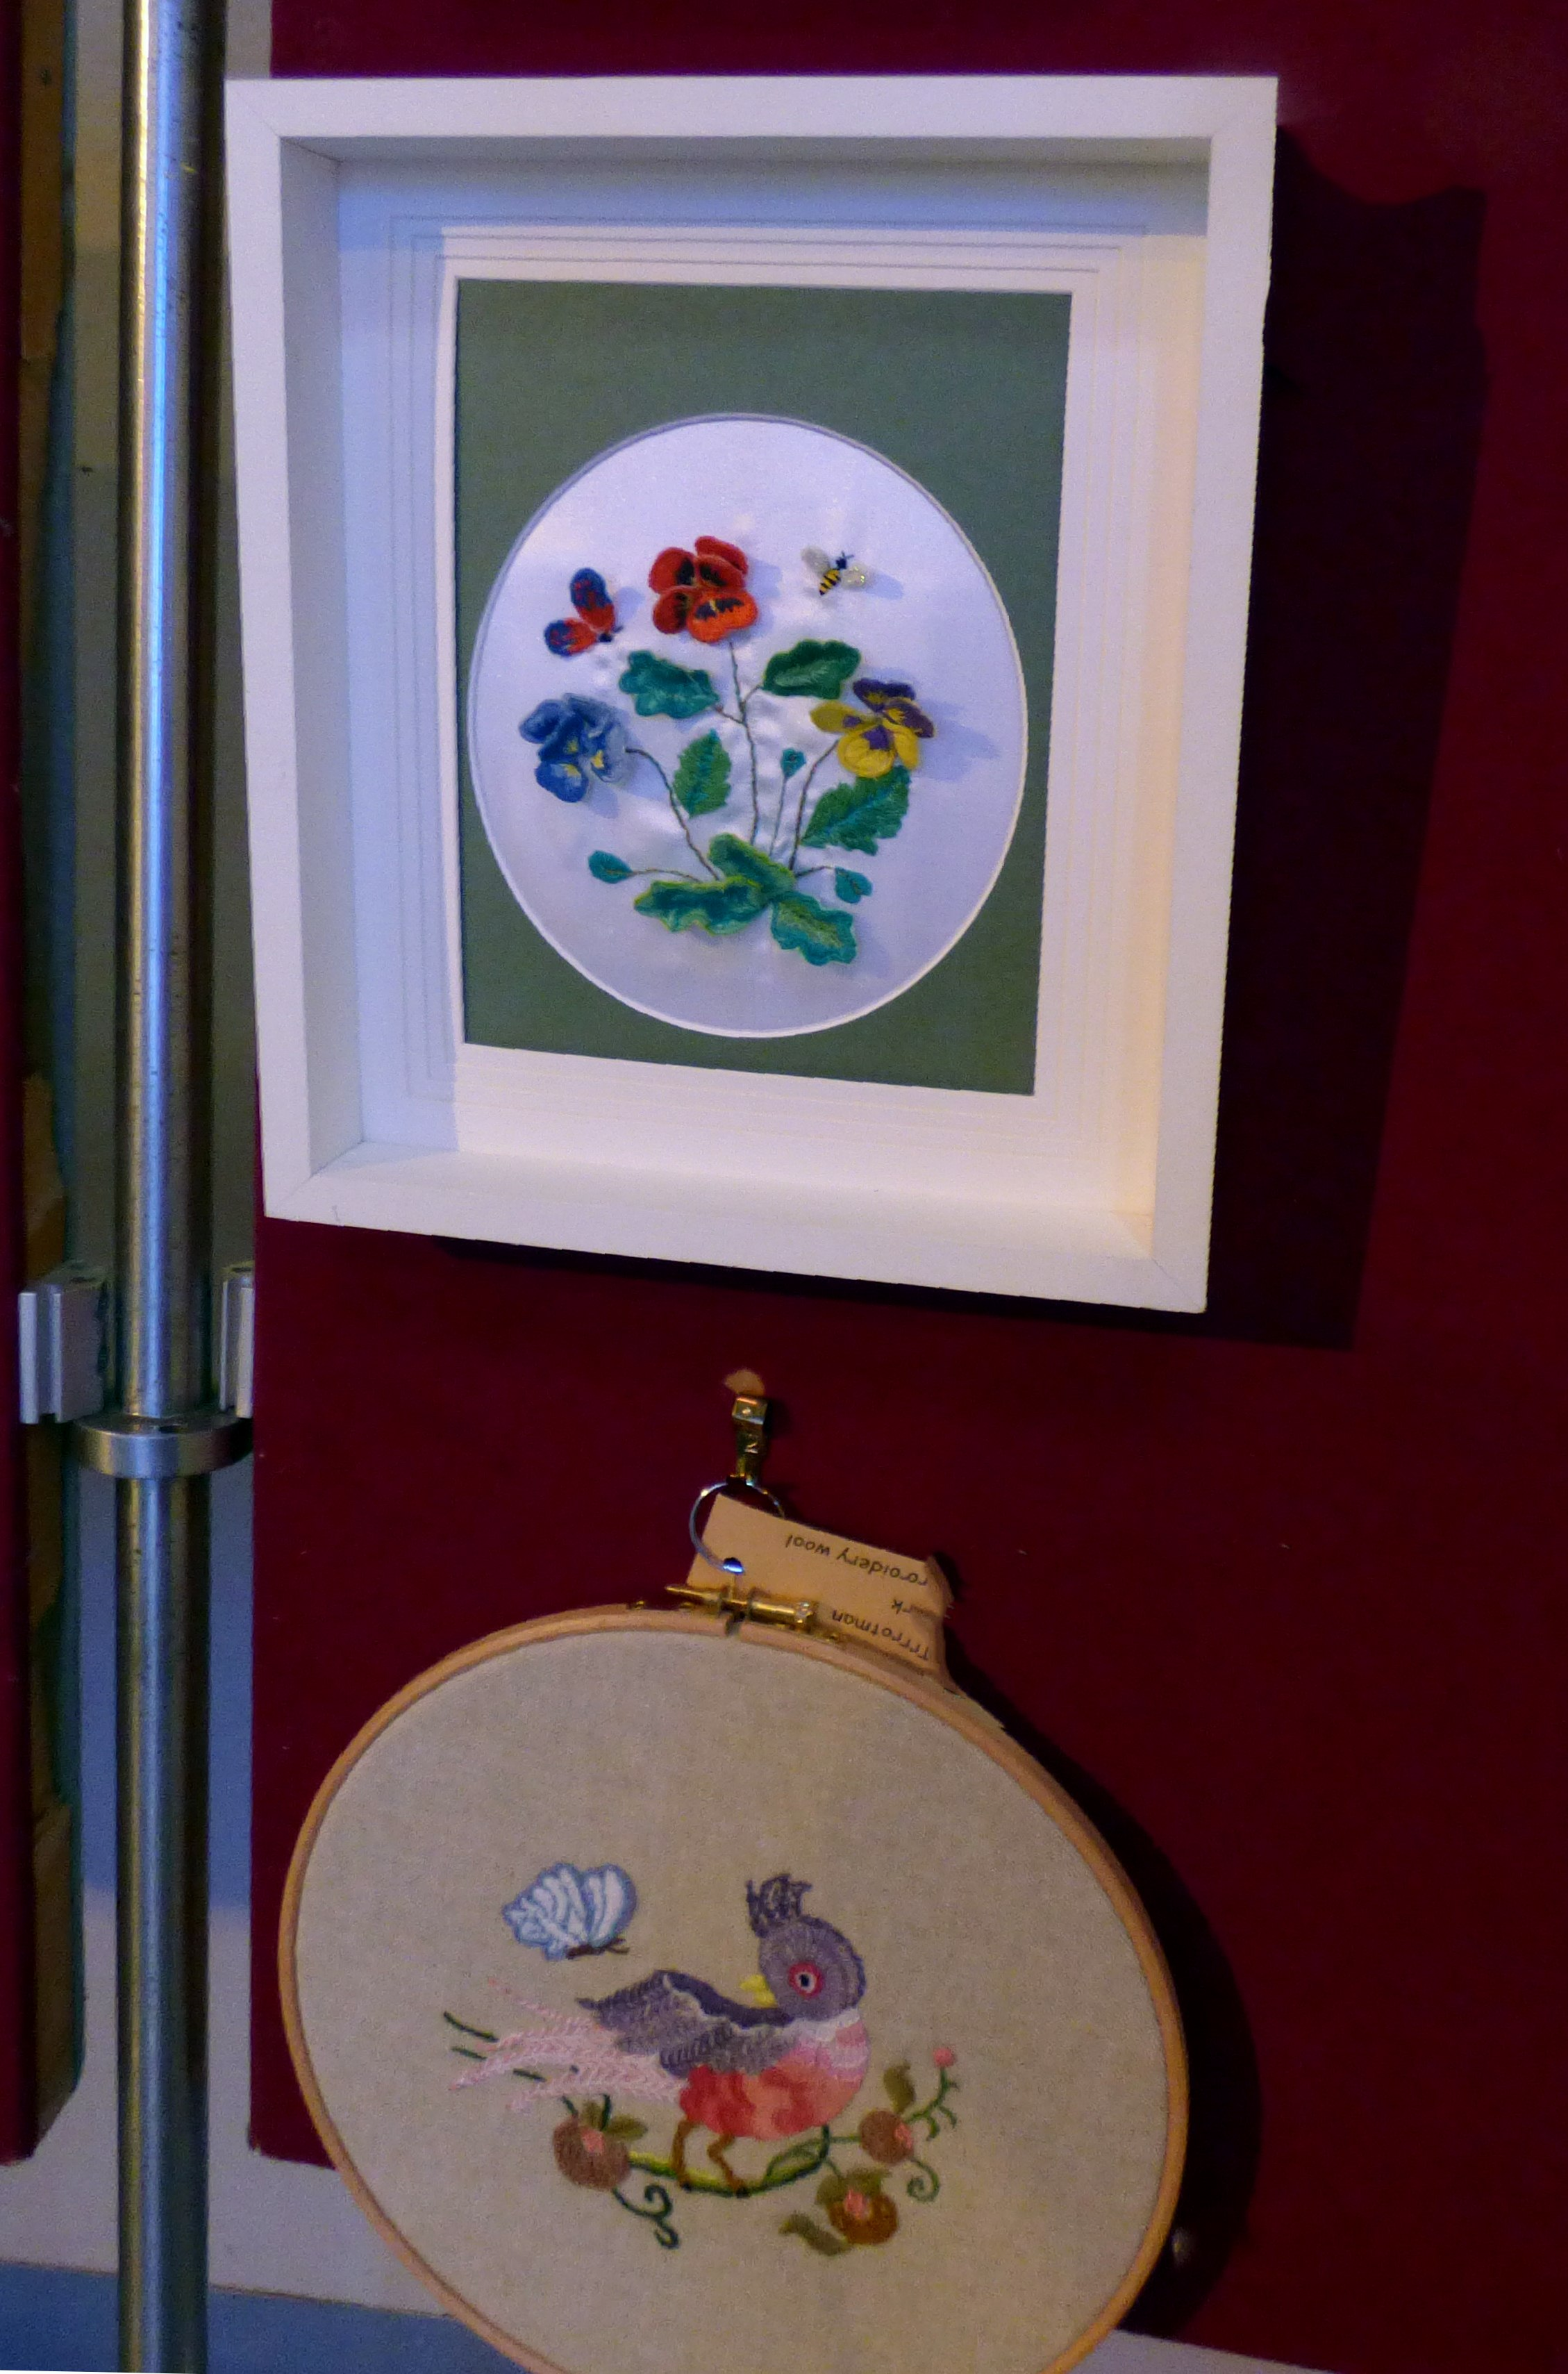 STUMPWORK by K.Green and CREWELWORK by F.Trotman, at Embroidery for Pleasure exhibition, Liverpool Metropolitan Cathedral 2016